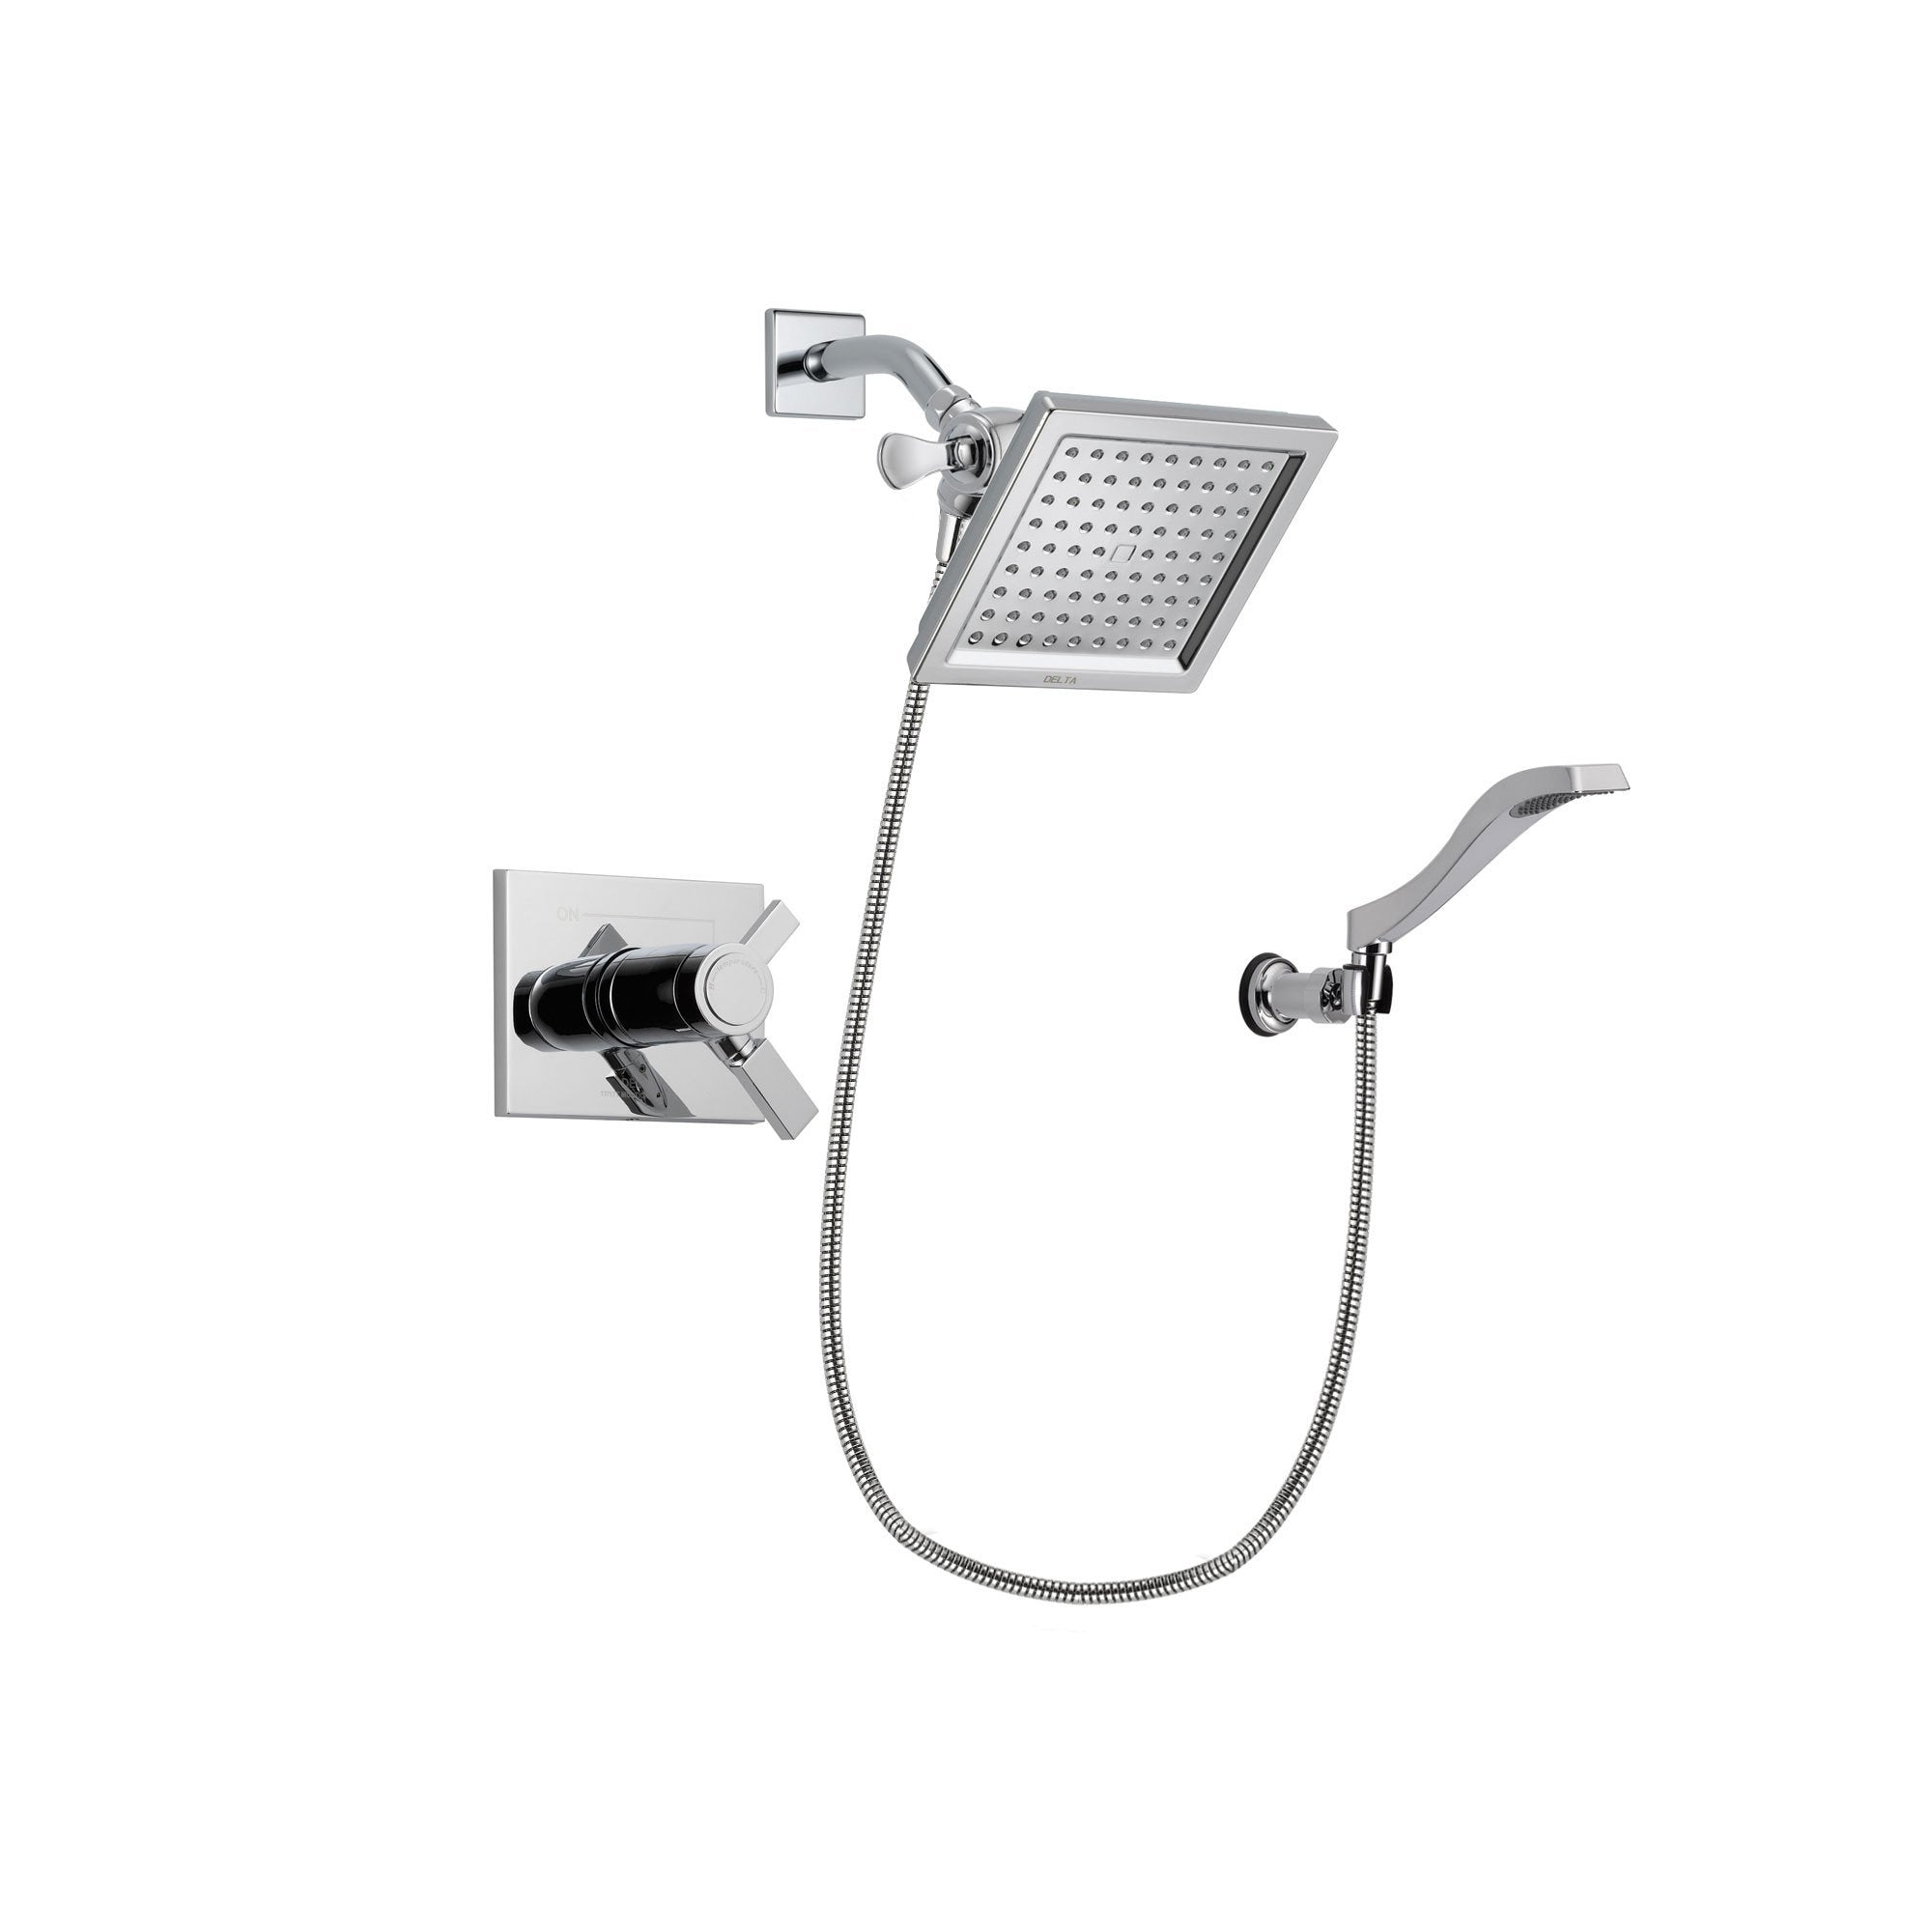 Delta Vero Chrome Shower Faucet System with Shower Head and Hand Shower DSP0020V